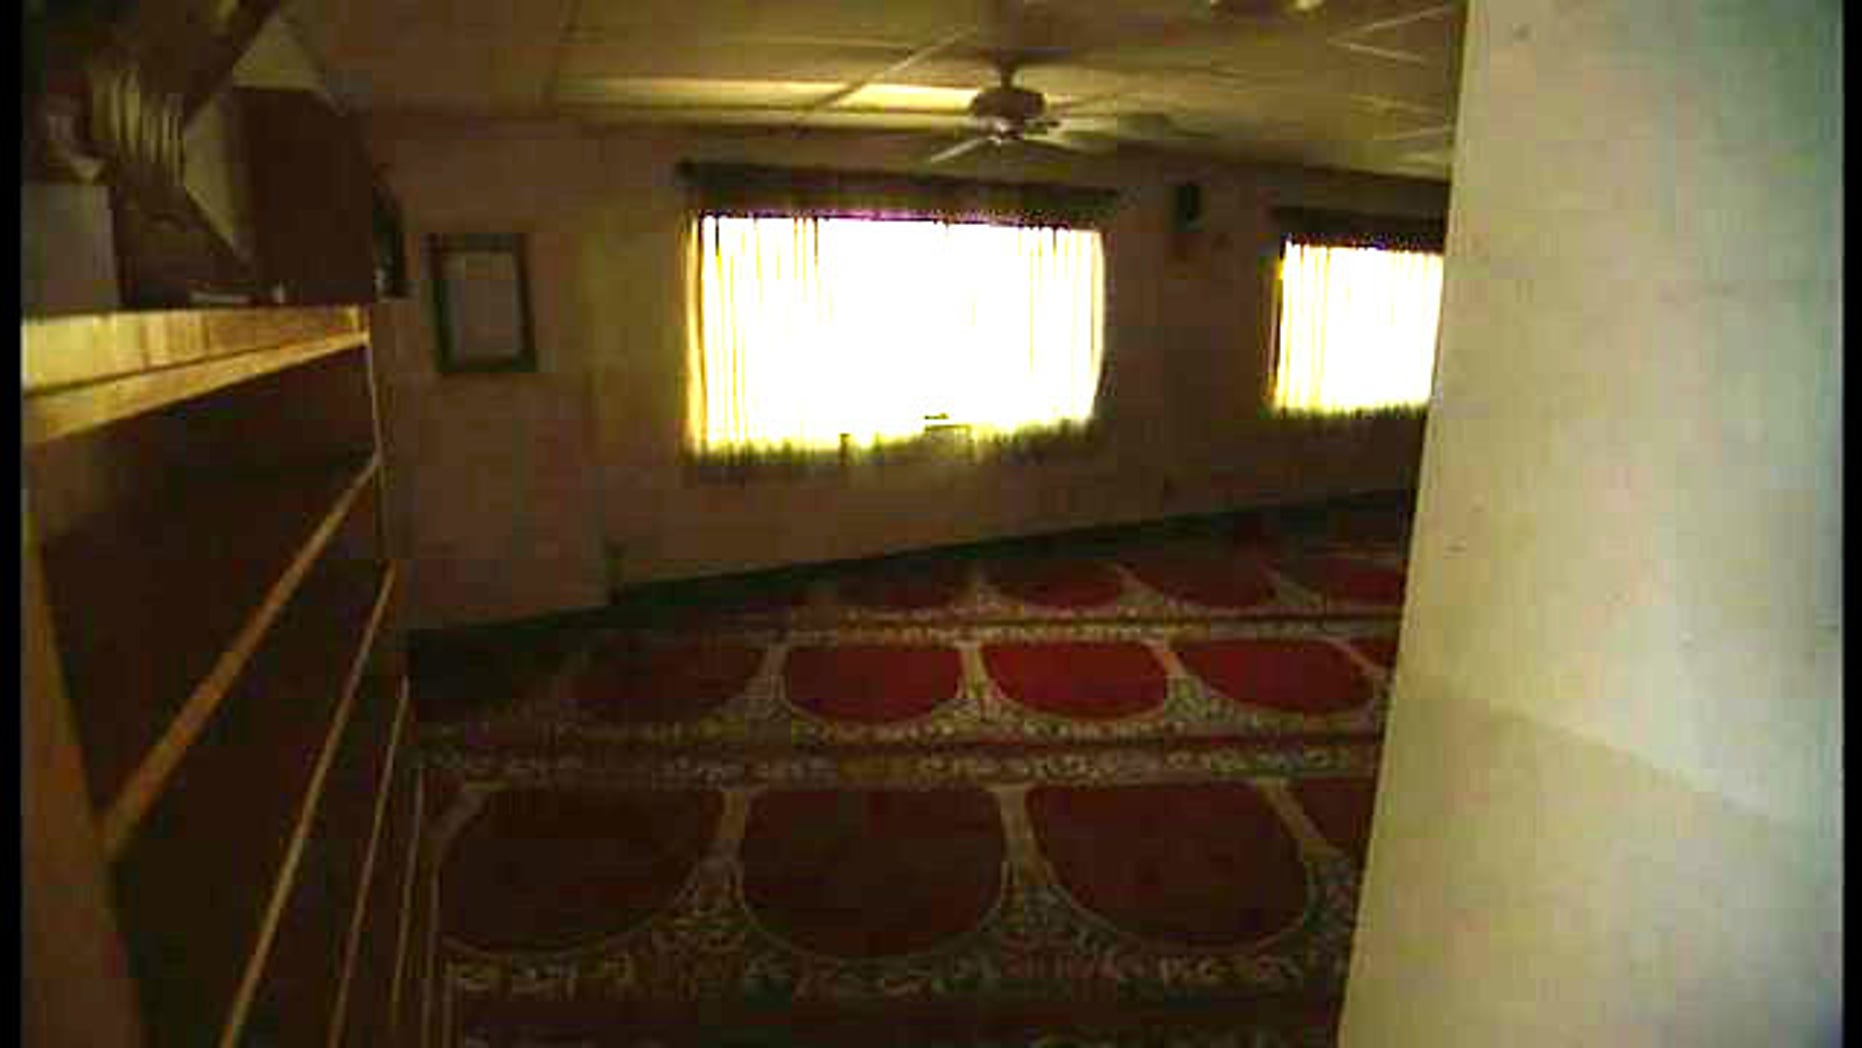 Anteroom inside the Al- Ribat mosque in La Mesa, Calif. where Awlaki is believed to have met with two of the 9/11 hijackers.